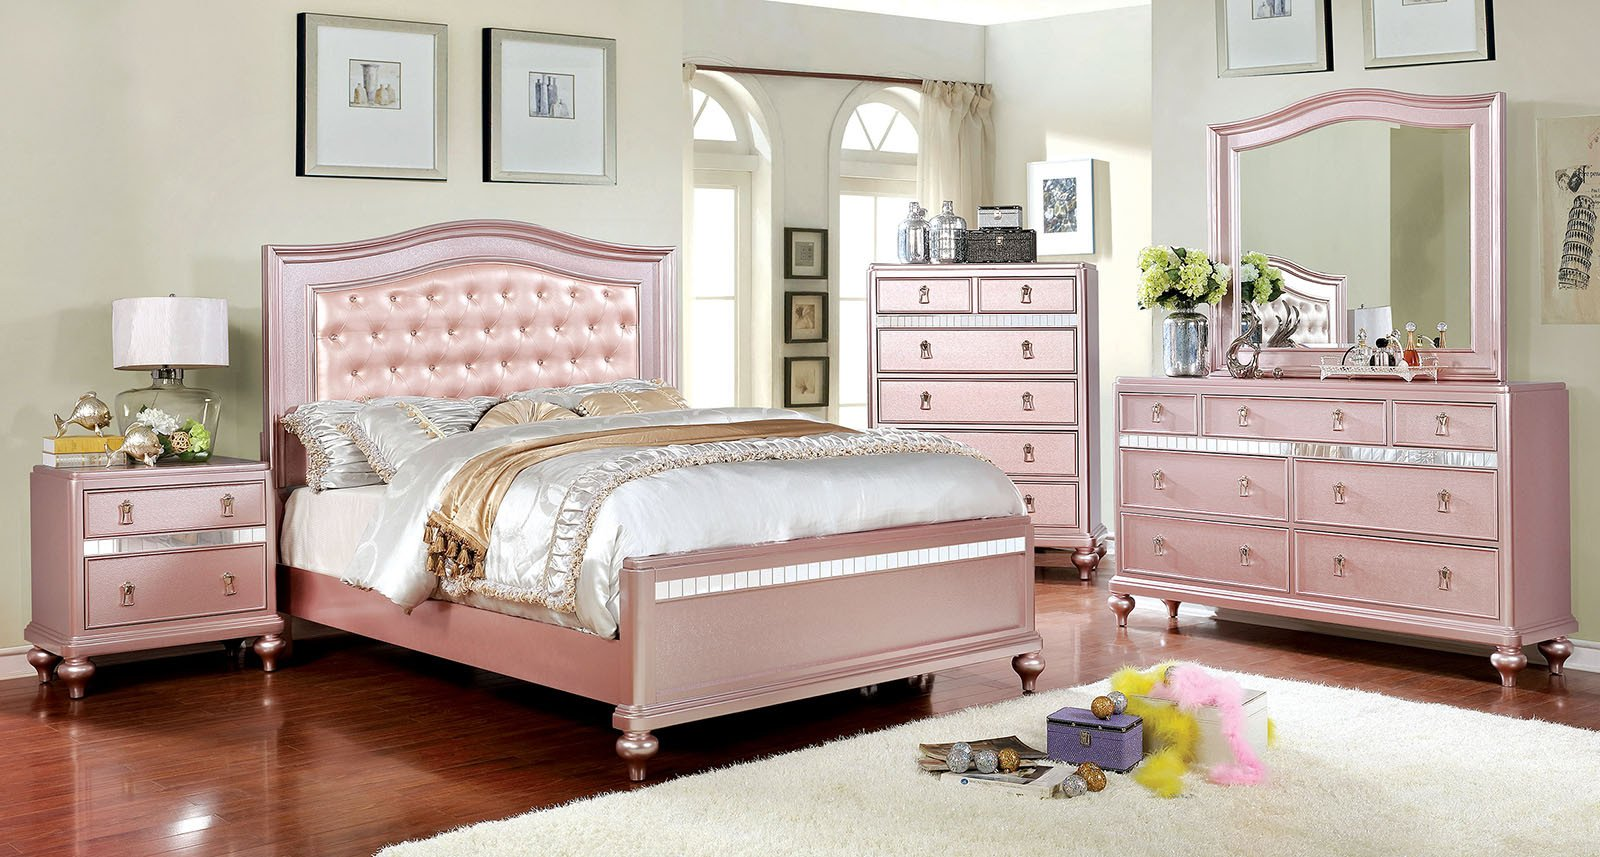 Modern King Size Bedroom Set Best Of Ariston Rose Gold Finish Cal King Size Bed with Mirrored Trim Jeweled button Tufted Padded Leather Headboard